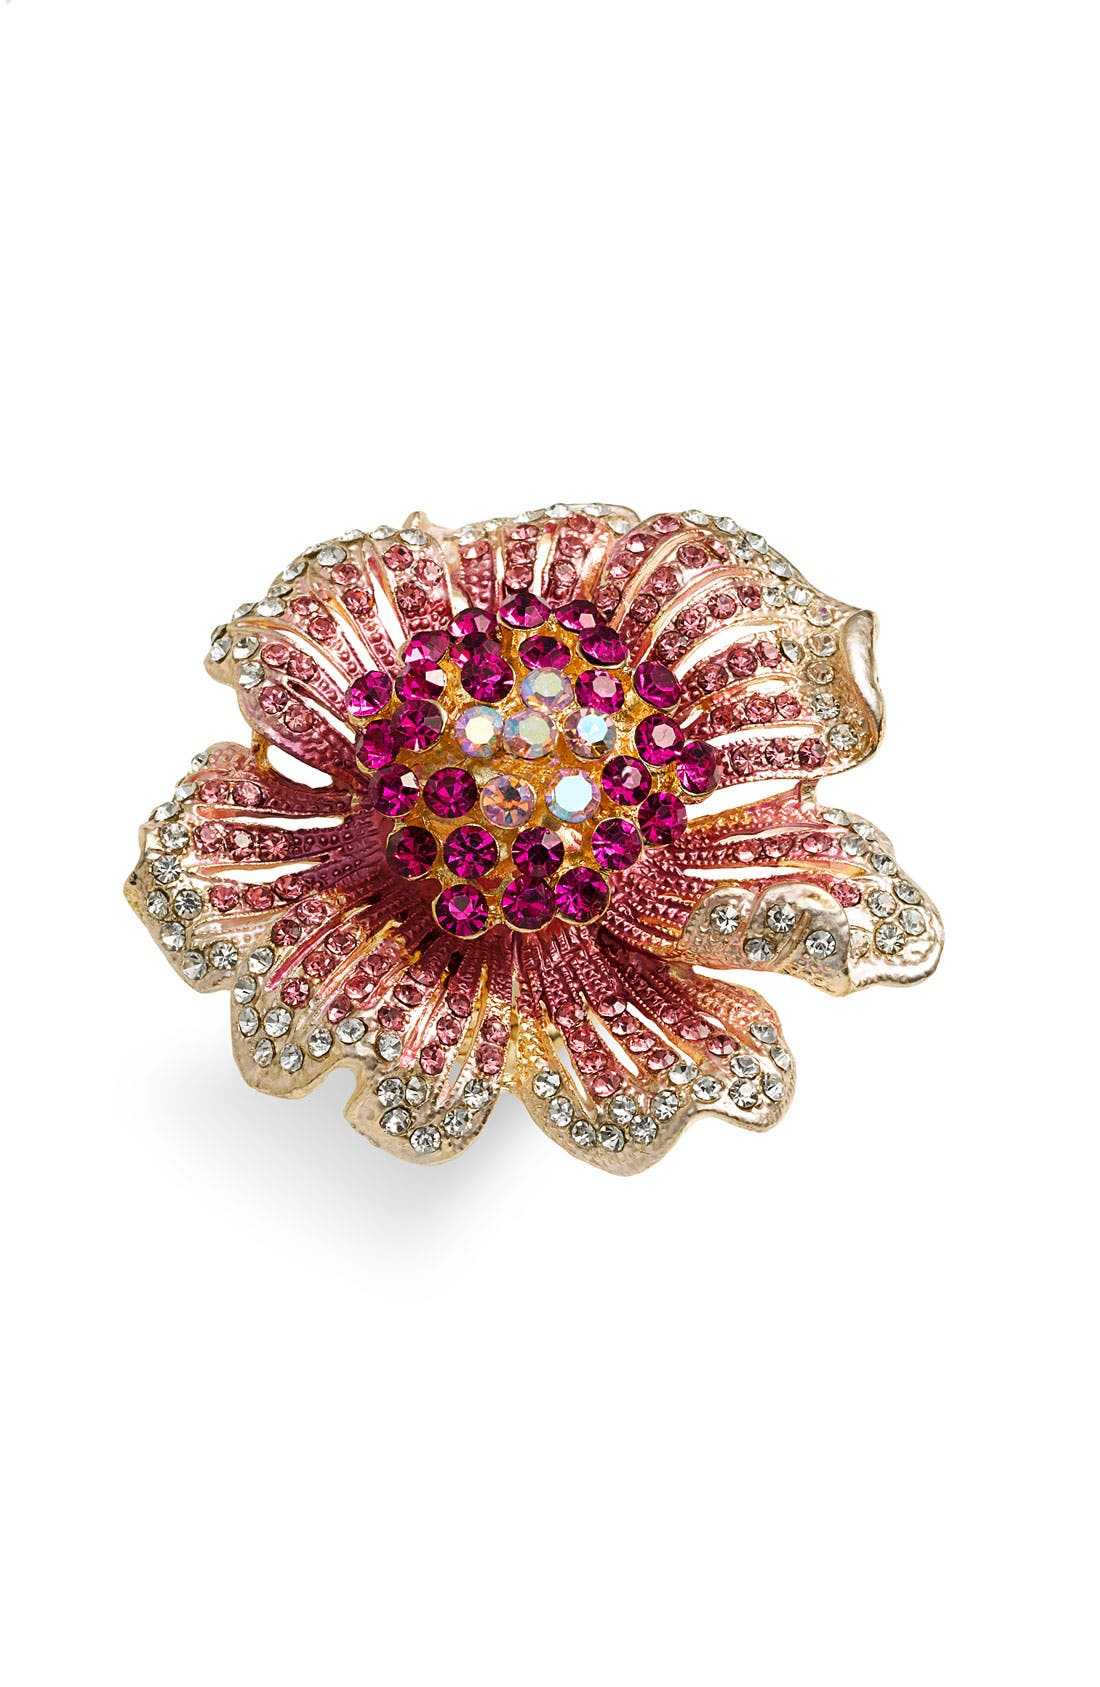 Main Image - Cara Accessories 'Critters' Large Flower Stretch Ring